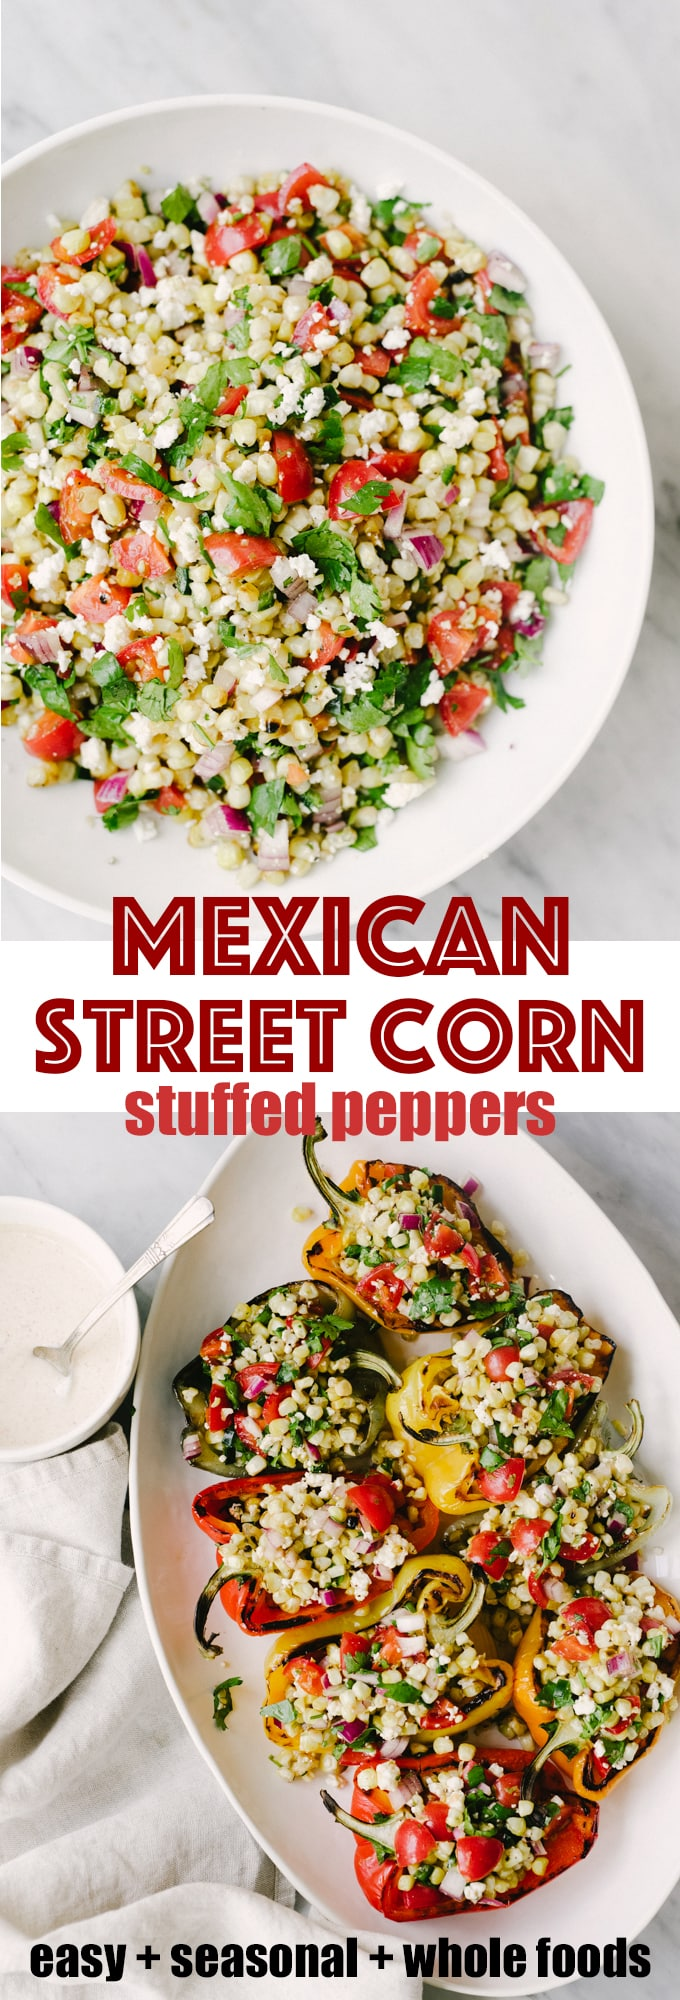 Grilled mexican street corn stuffed peppers are a fast, easy, vegetarian meal. This delicious real food + whole food recipe is packed with vegetables and an easy weeknight dinner, lunch, or side dish. #healthy #wholefood #realfood #vegetarian